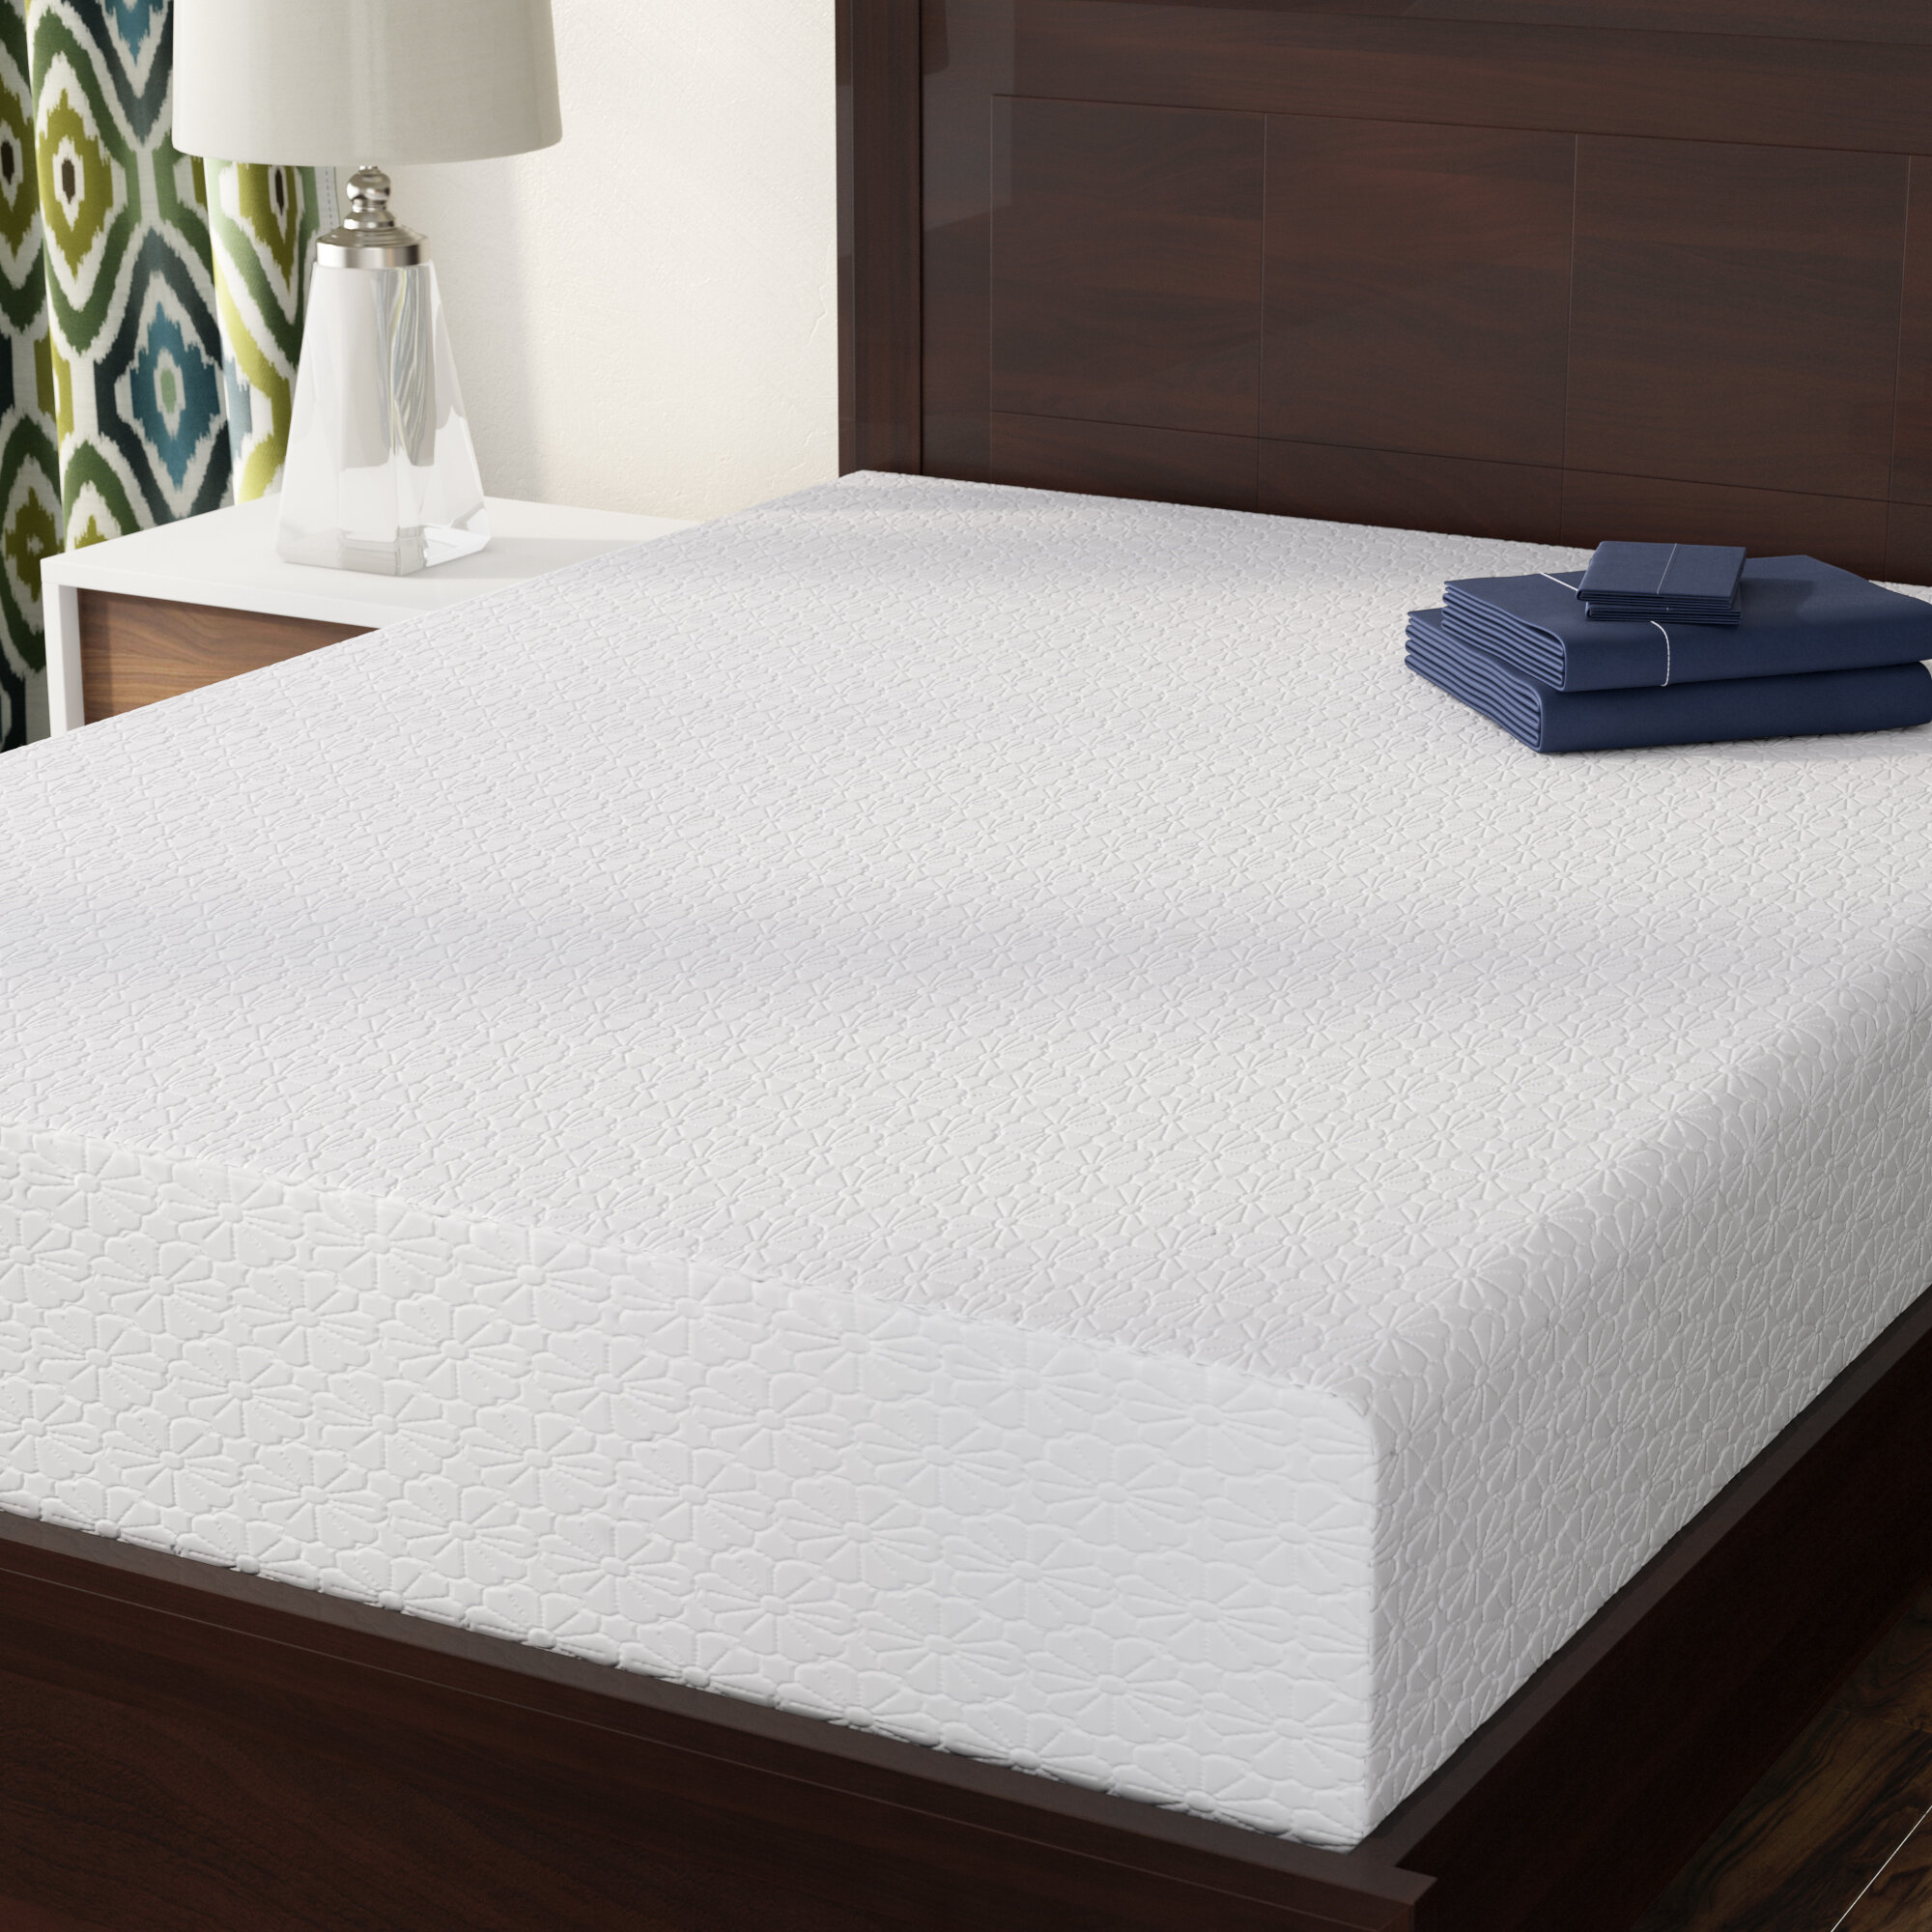 experts serta blog amg mattress worlds michigan largest gallery american s sale tempurpedic